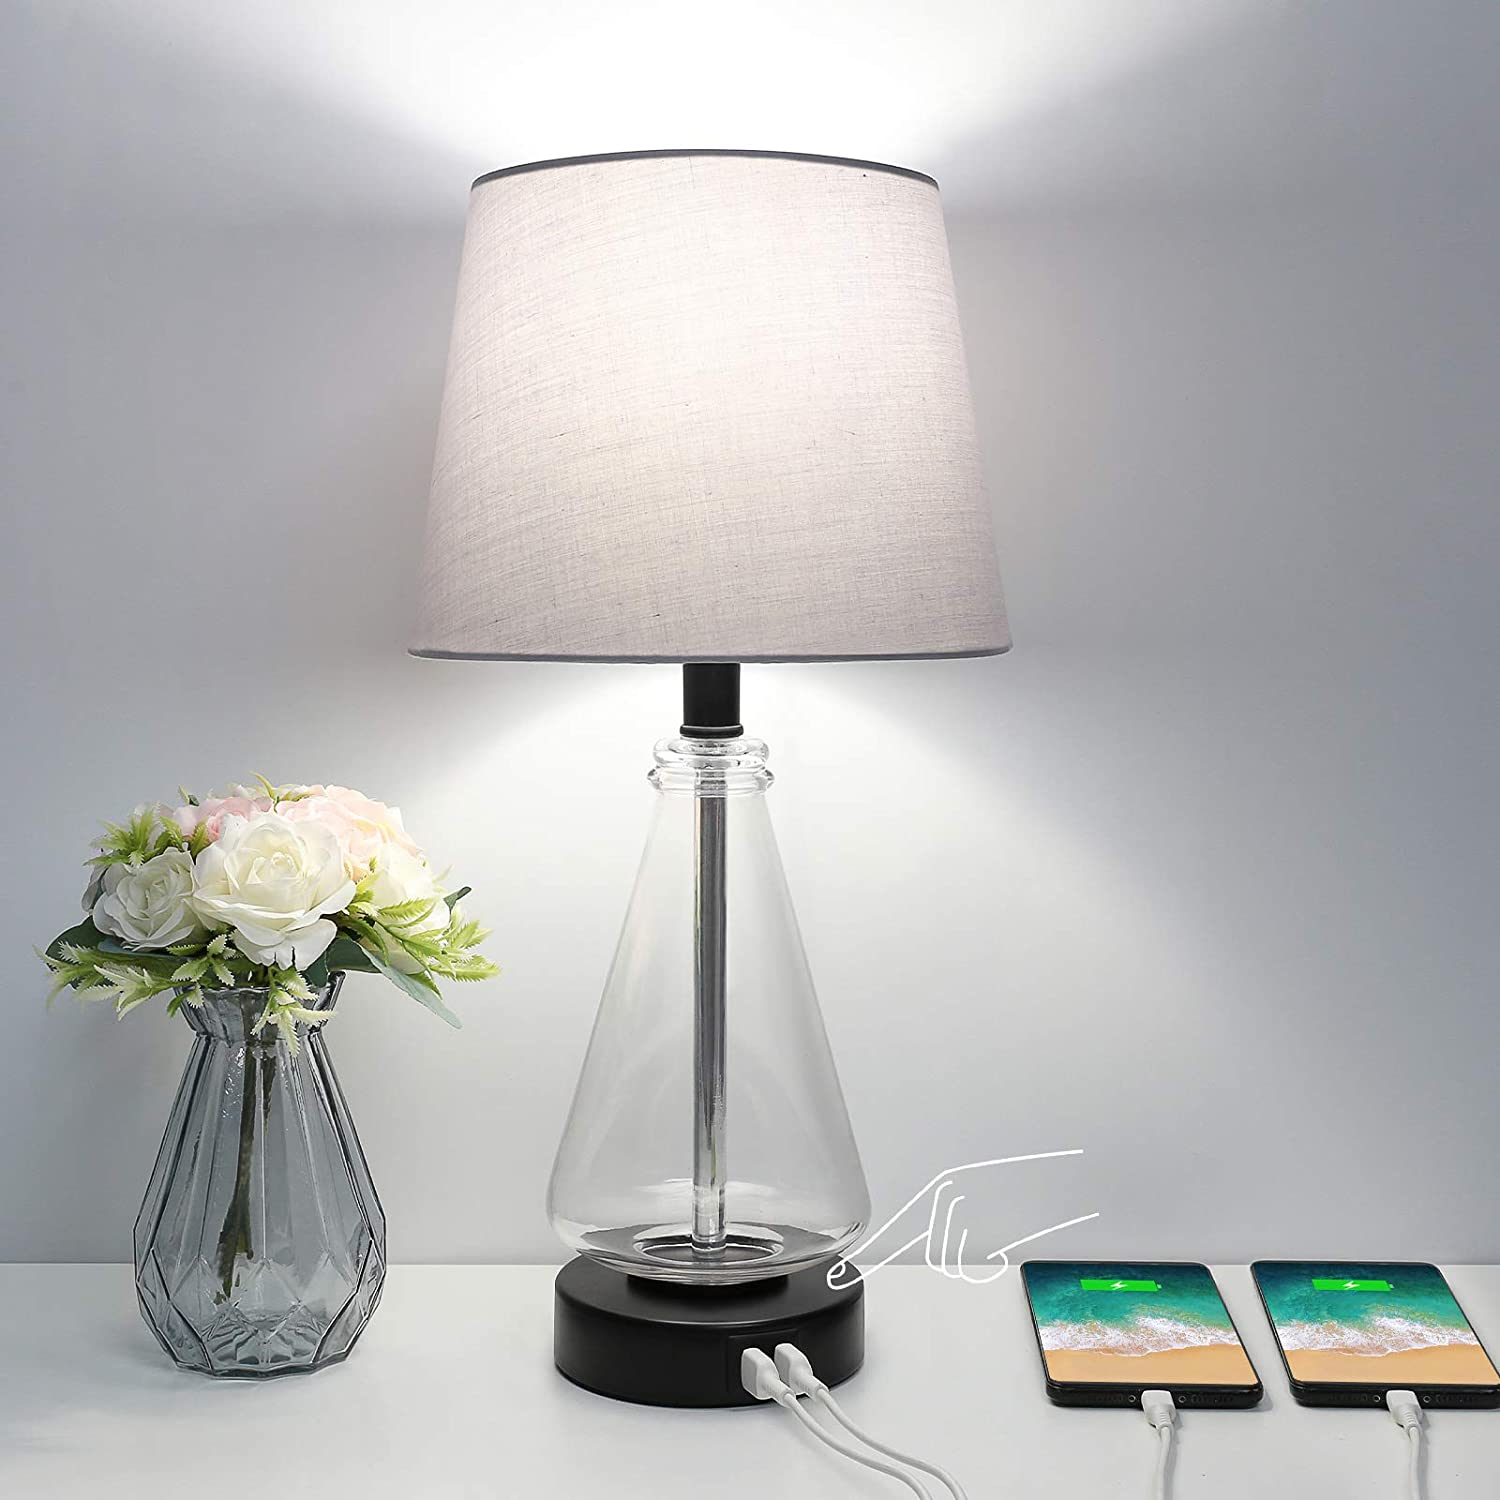 Super popular specialty store Touch Control USB Table Lamp Bedside Dimmable Way Max 63% OFF Boncoo 3